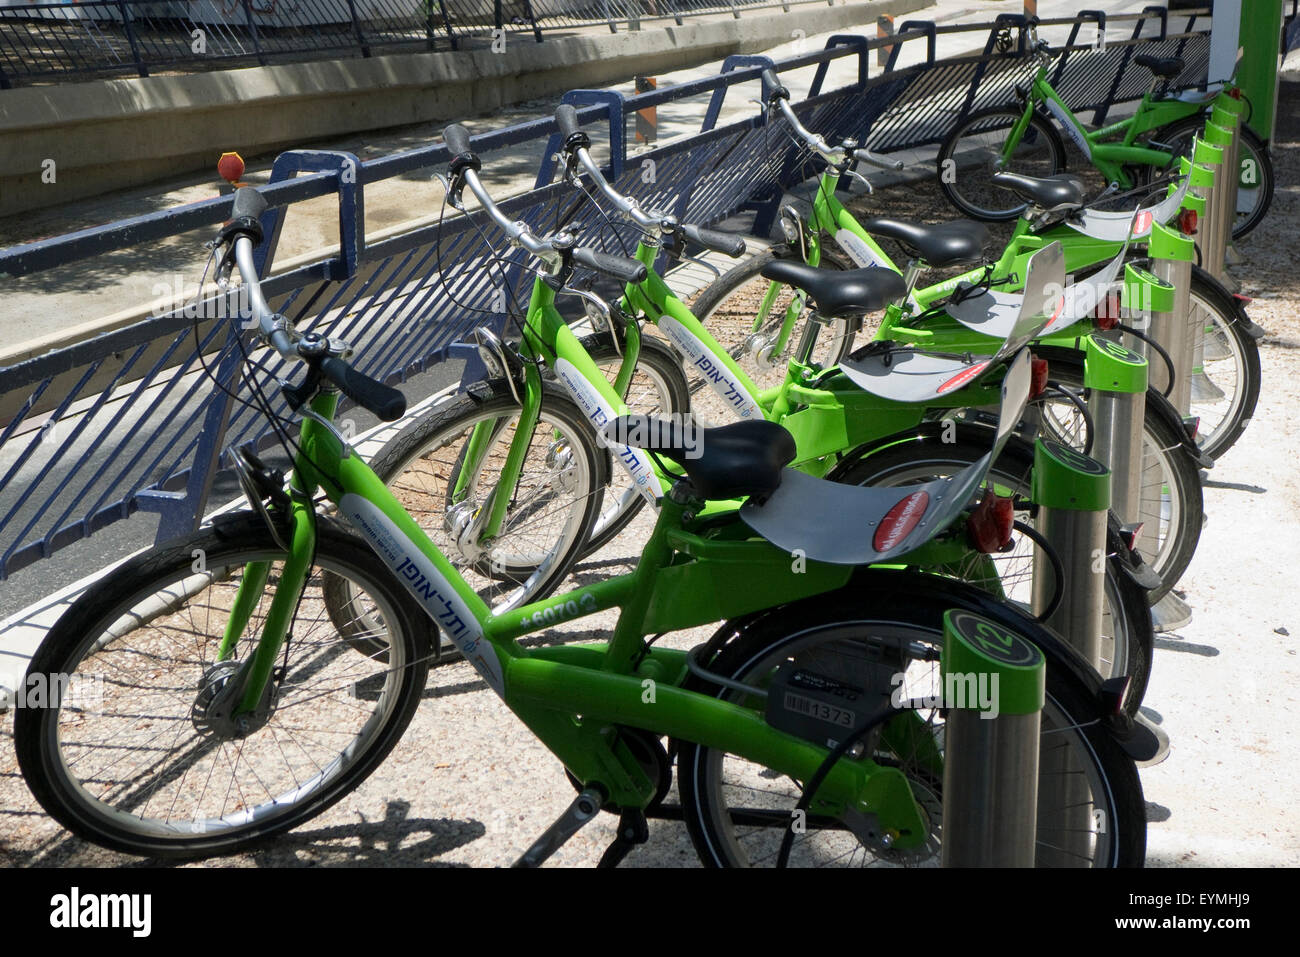 Tel Aviv, automate at a bicycle-rental station, Israel - Stock Image